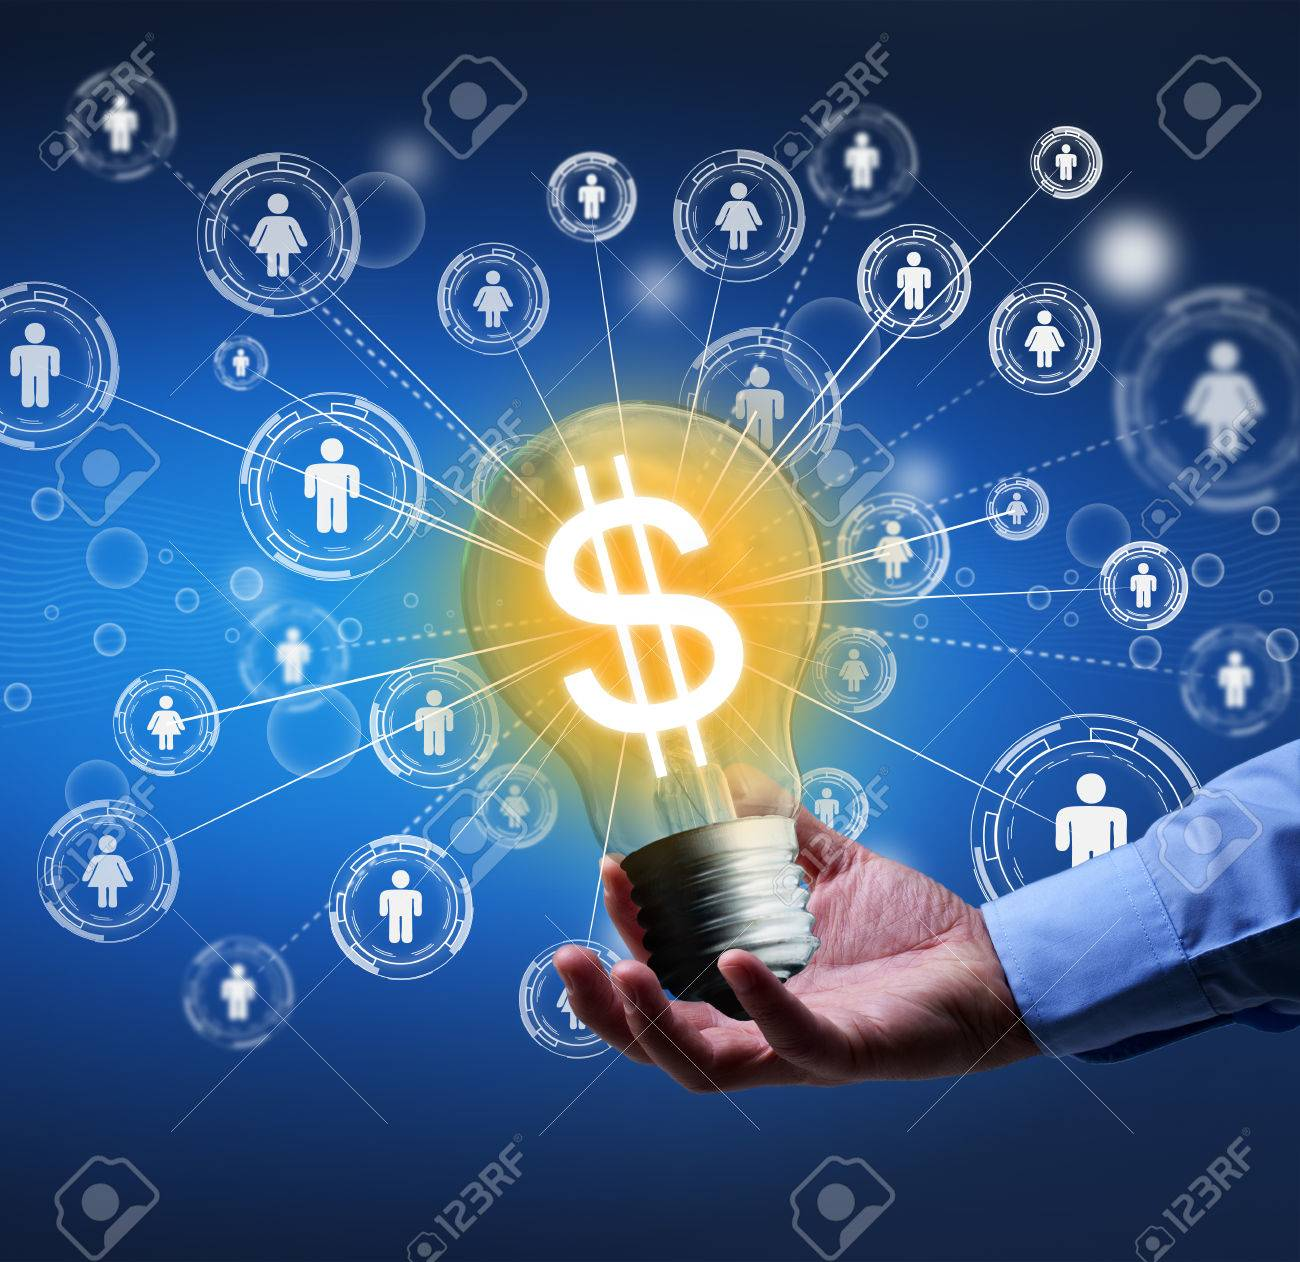 Presenting a new idea - crowdfunding or community funding concept - 37347012